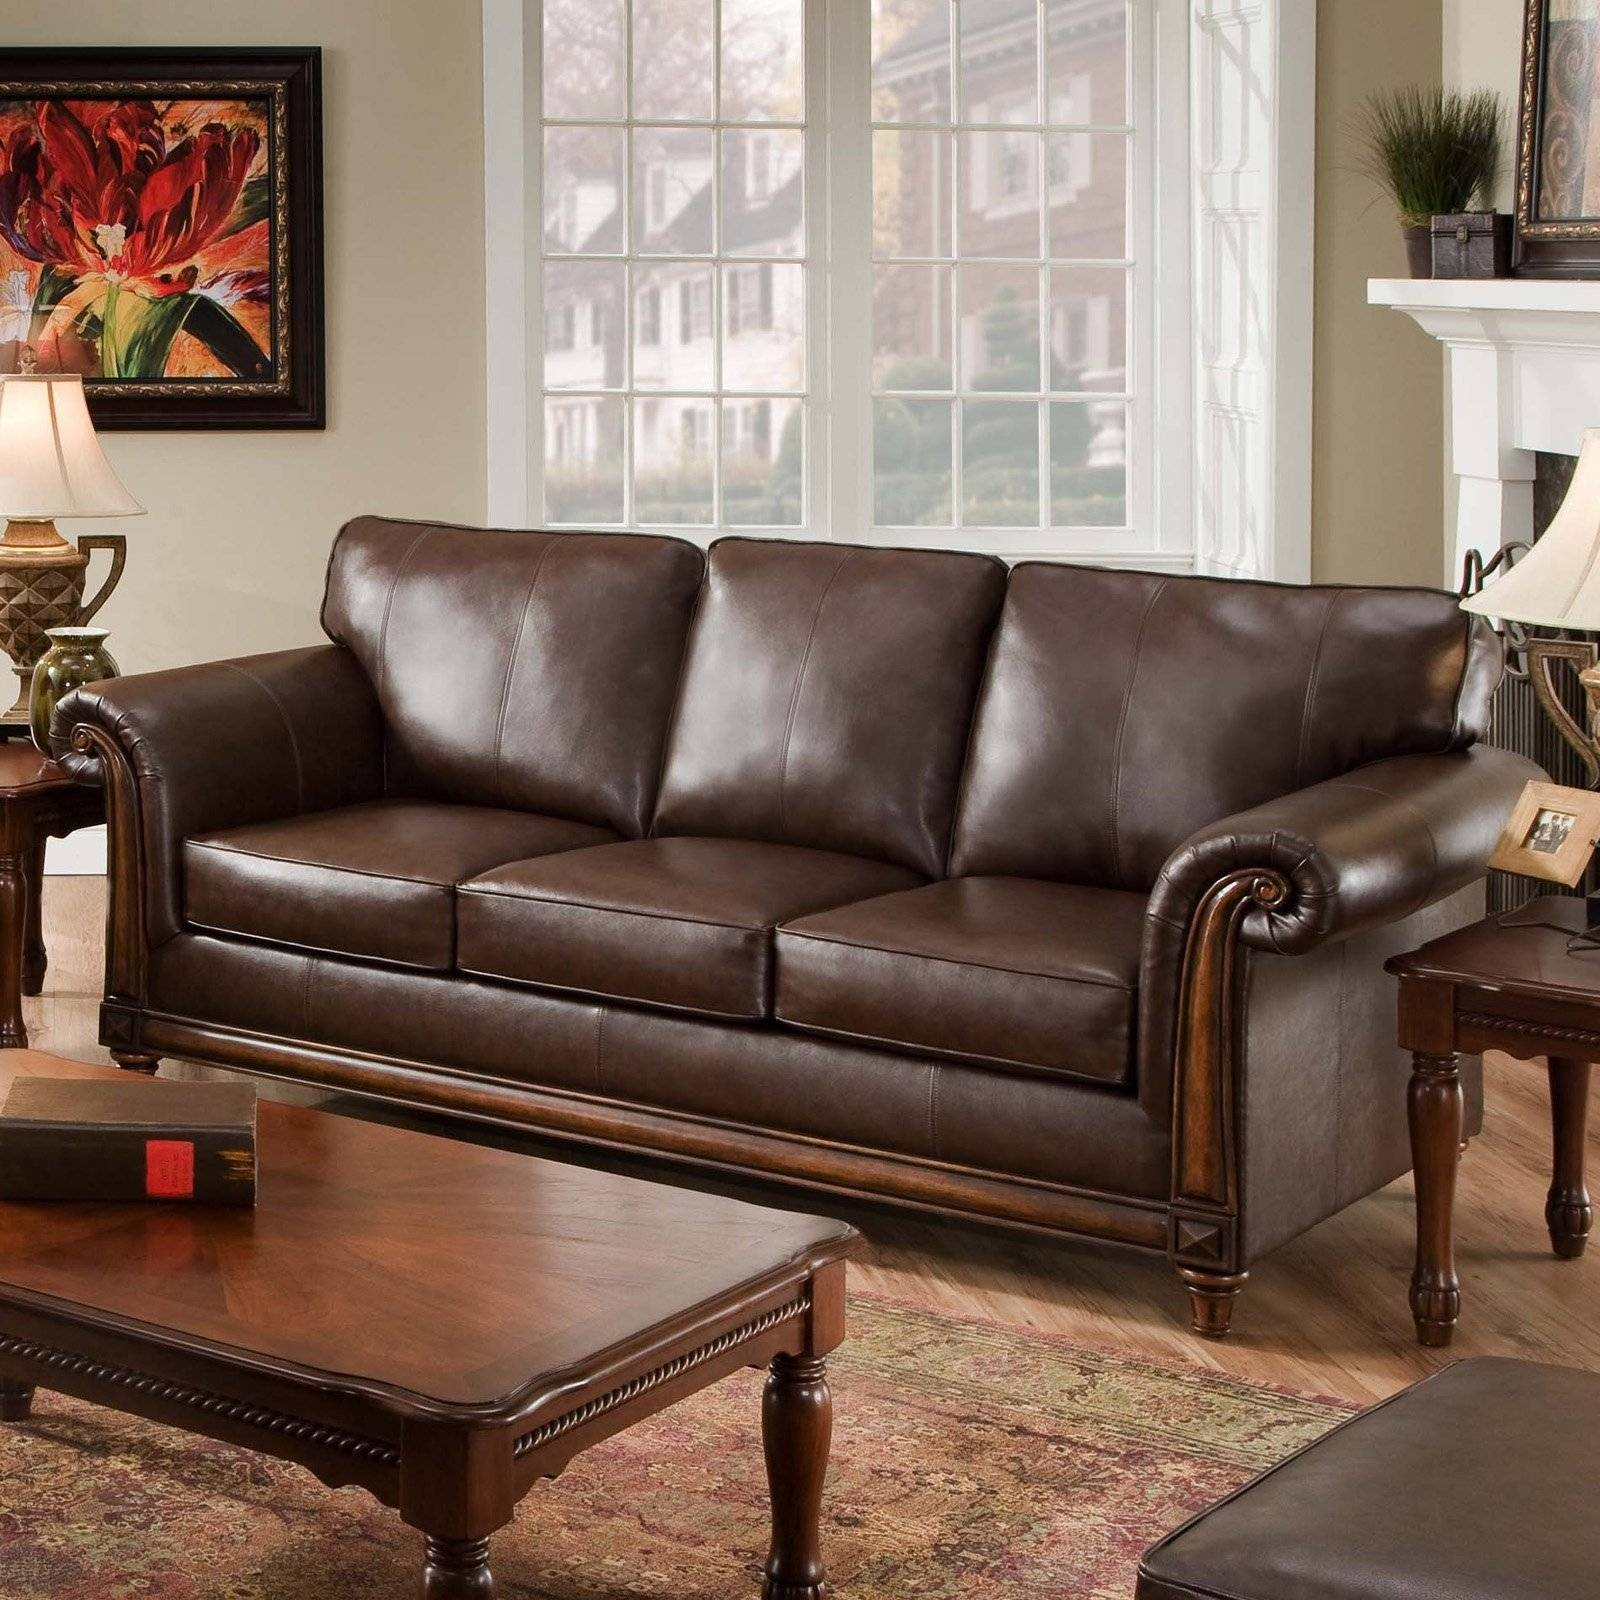 Simmons San Diego Coffee Leather Sofa | Hayneedle inside Simmons Sofas (Image 7 of 15)